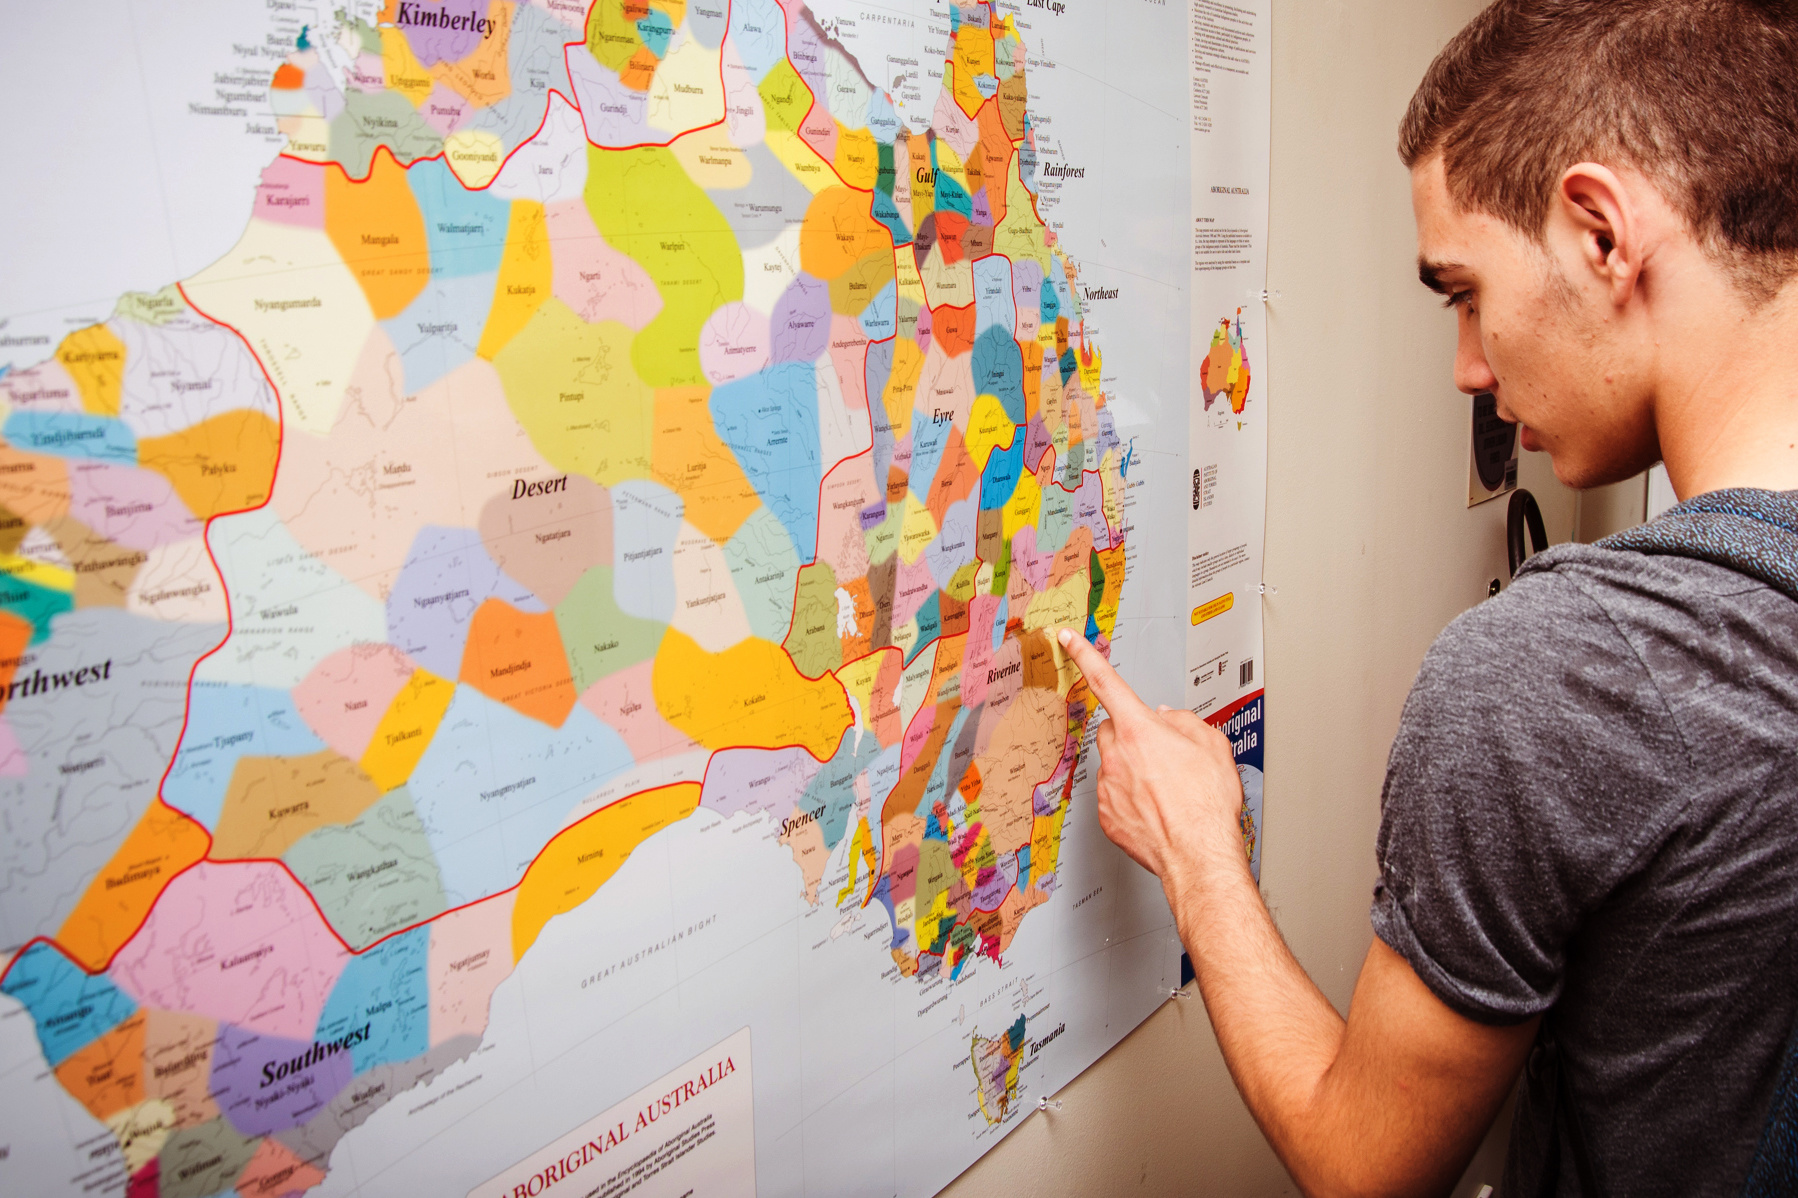 A student interacting with a colourful map of rural Australia